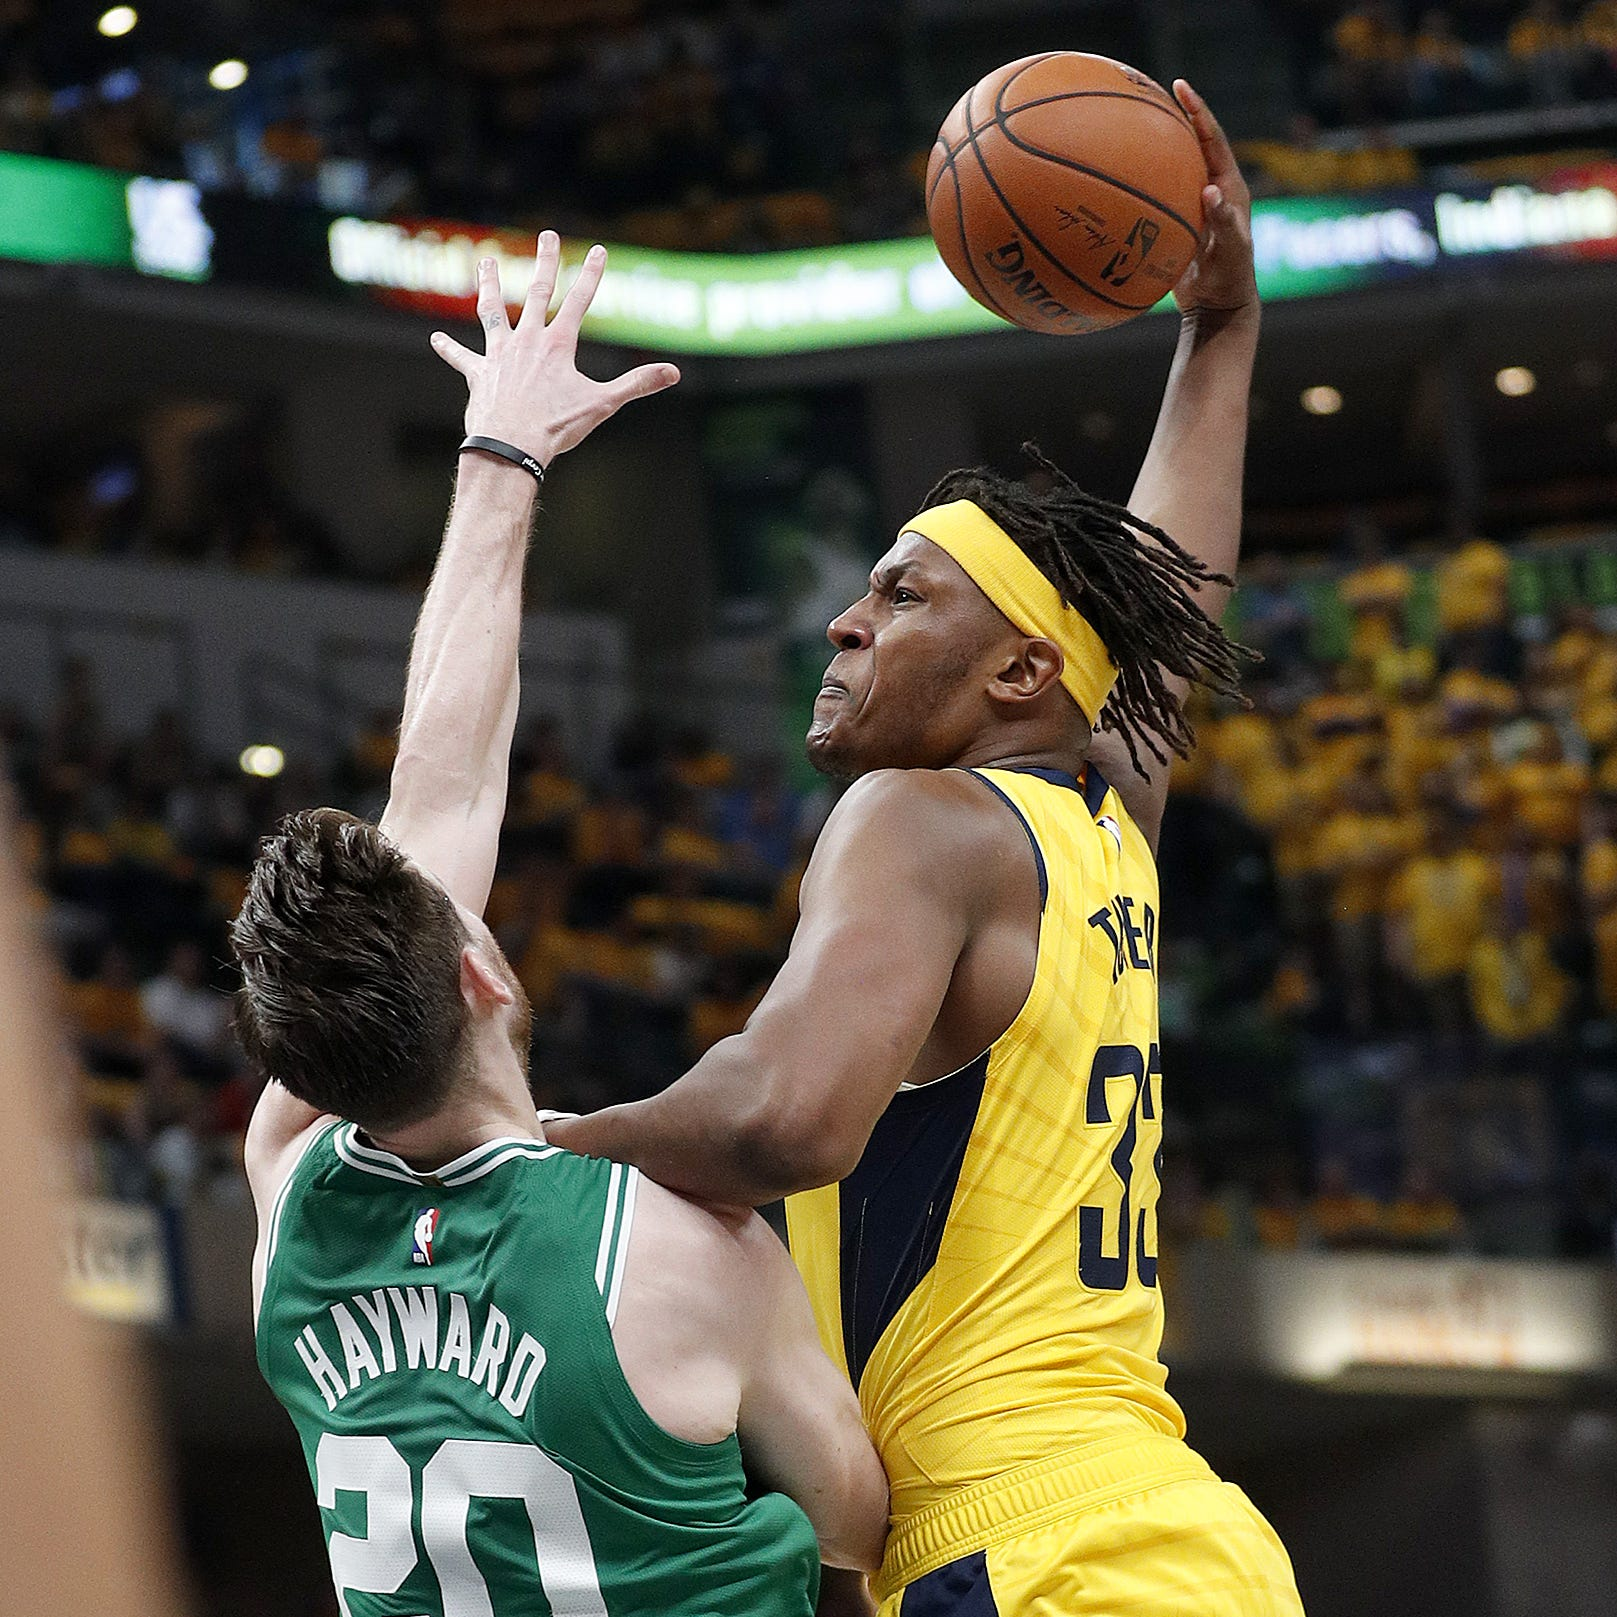 Watch Myles Turner put Gordon Hayward on a poster